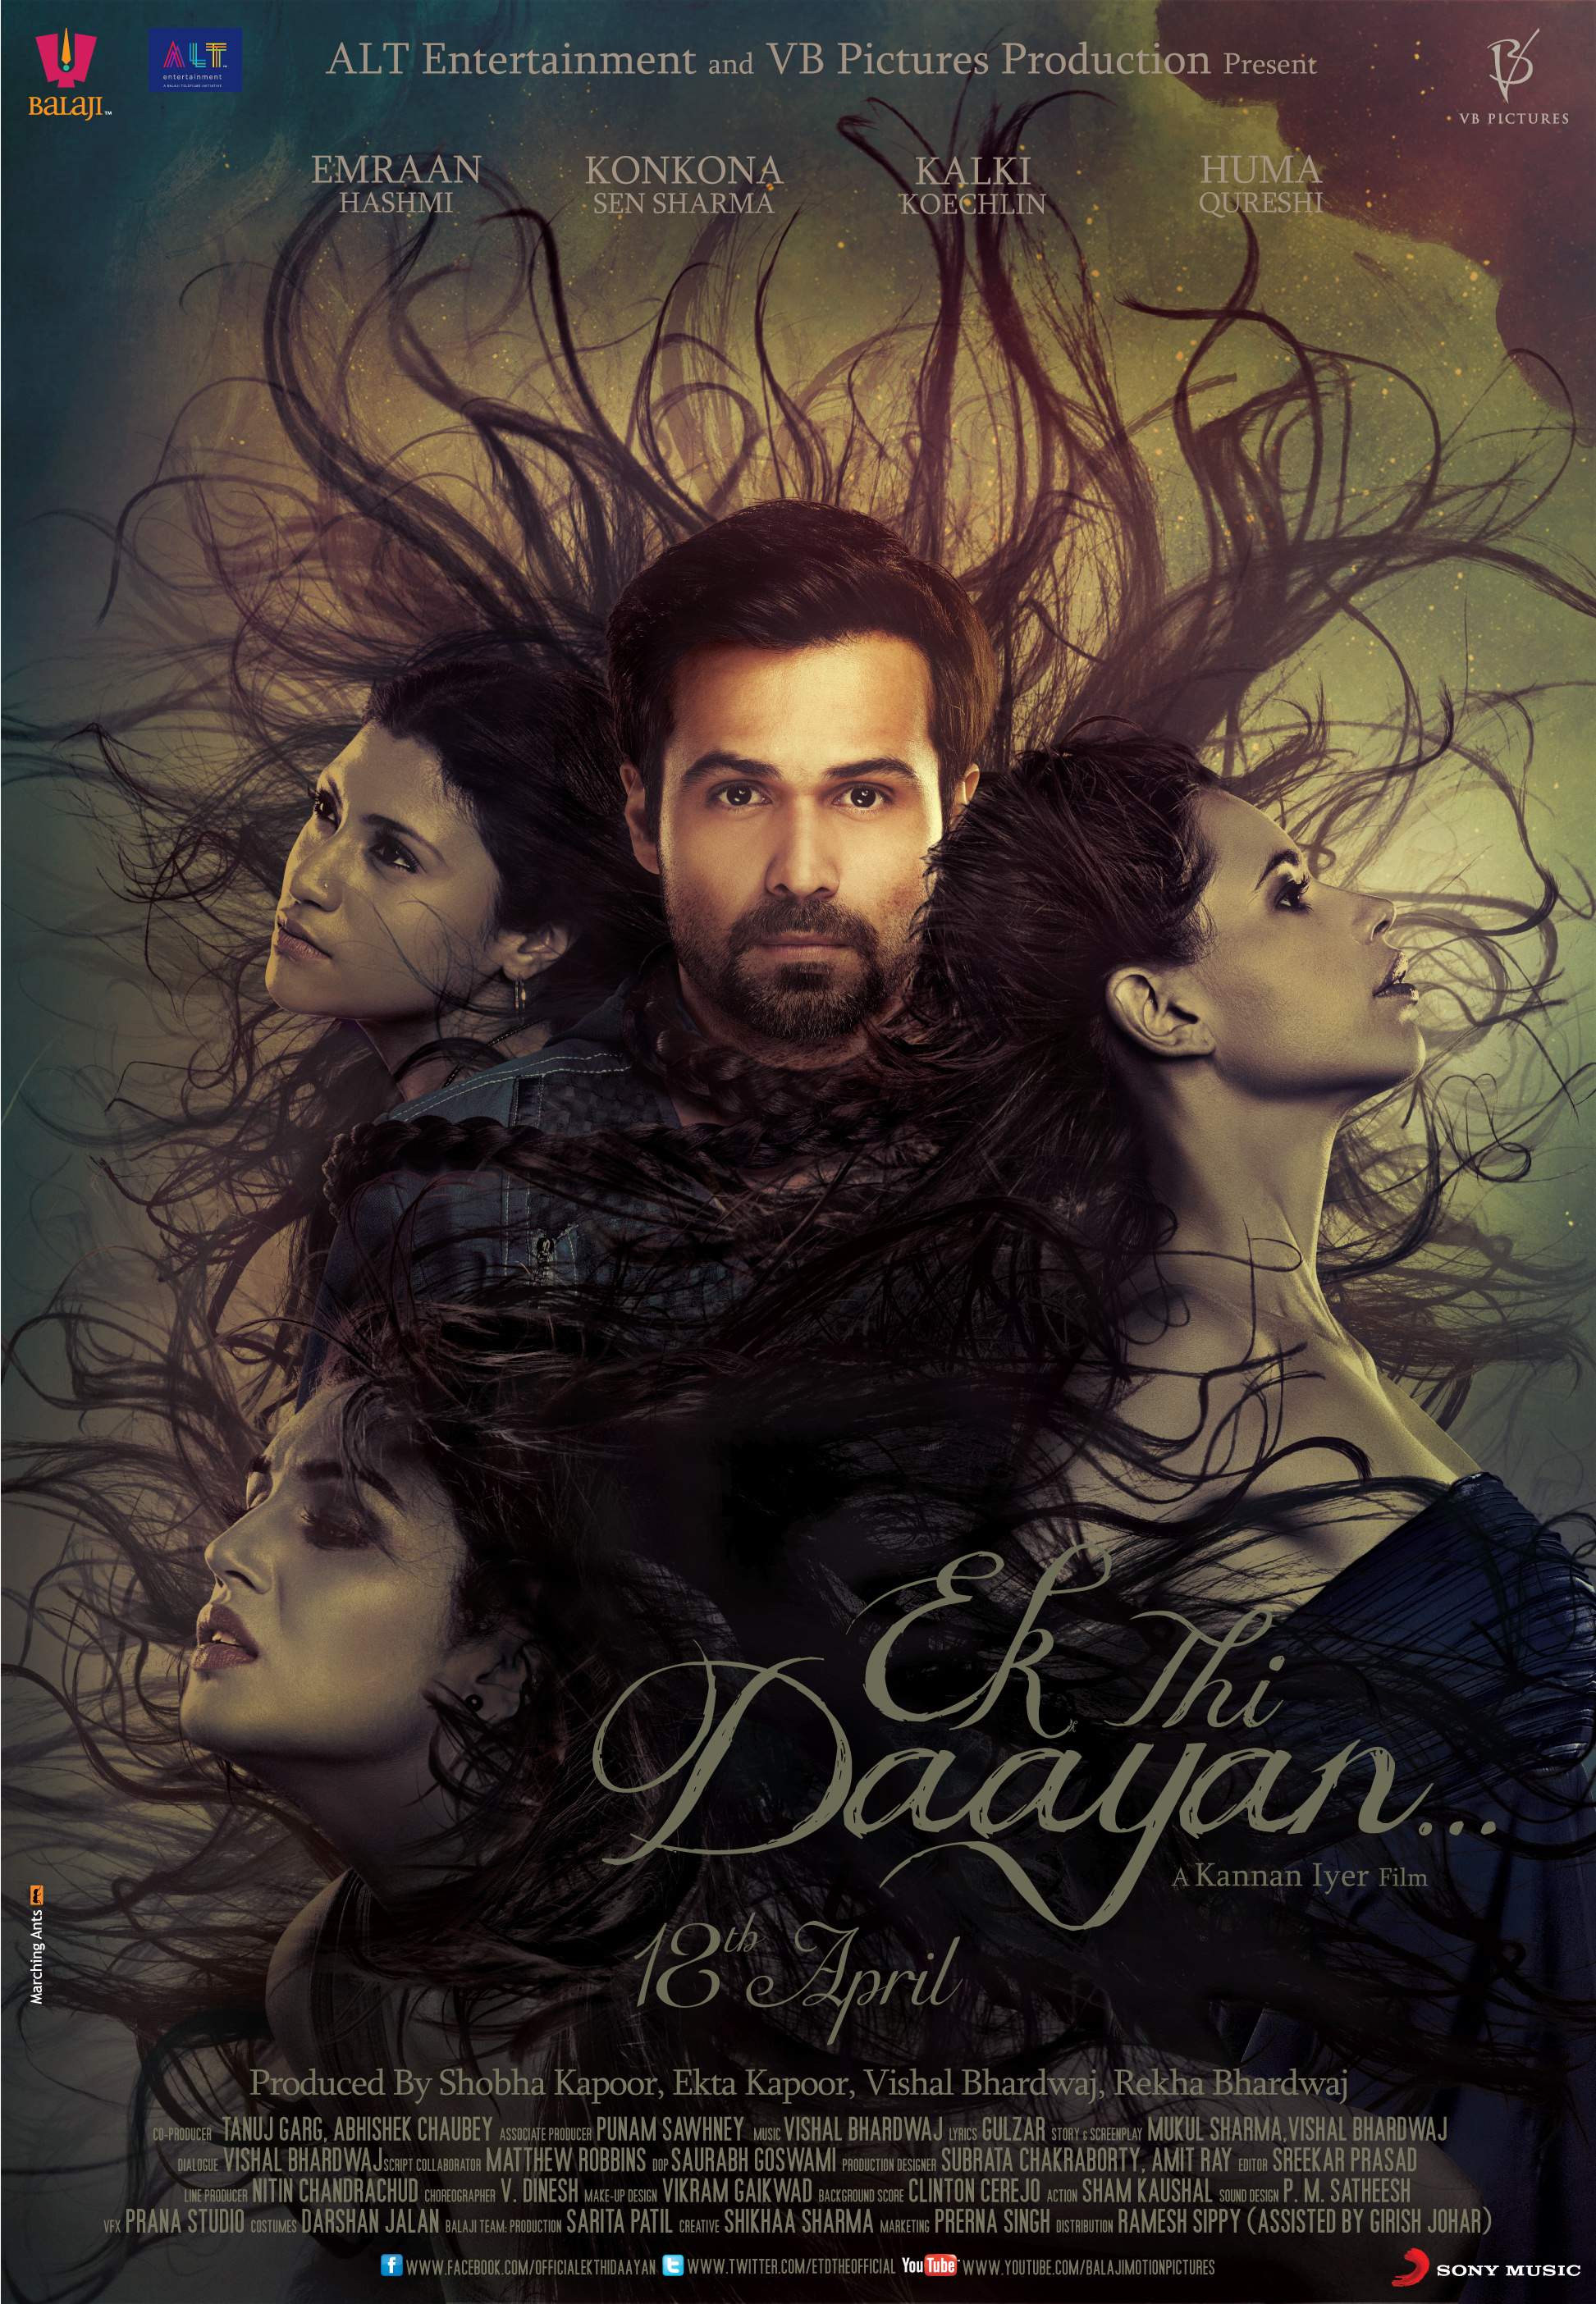 Ek Thi Daayan - Movie Poster #1 (Original)